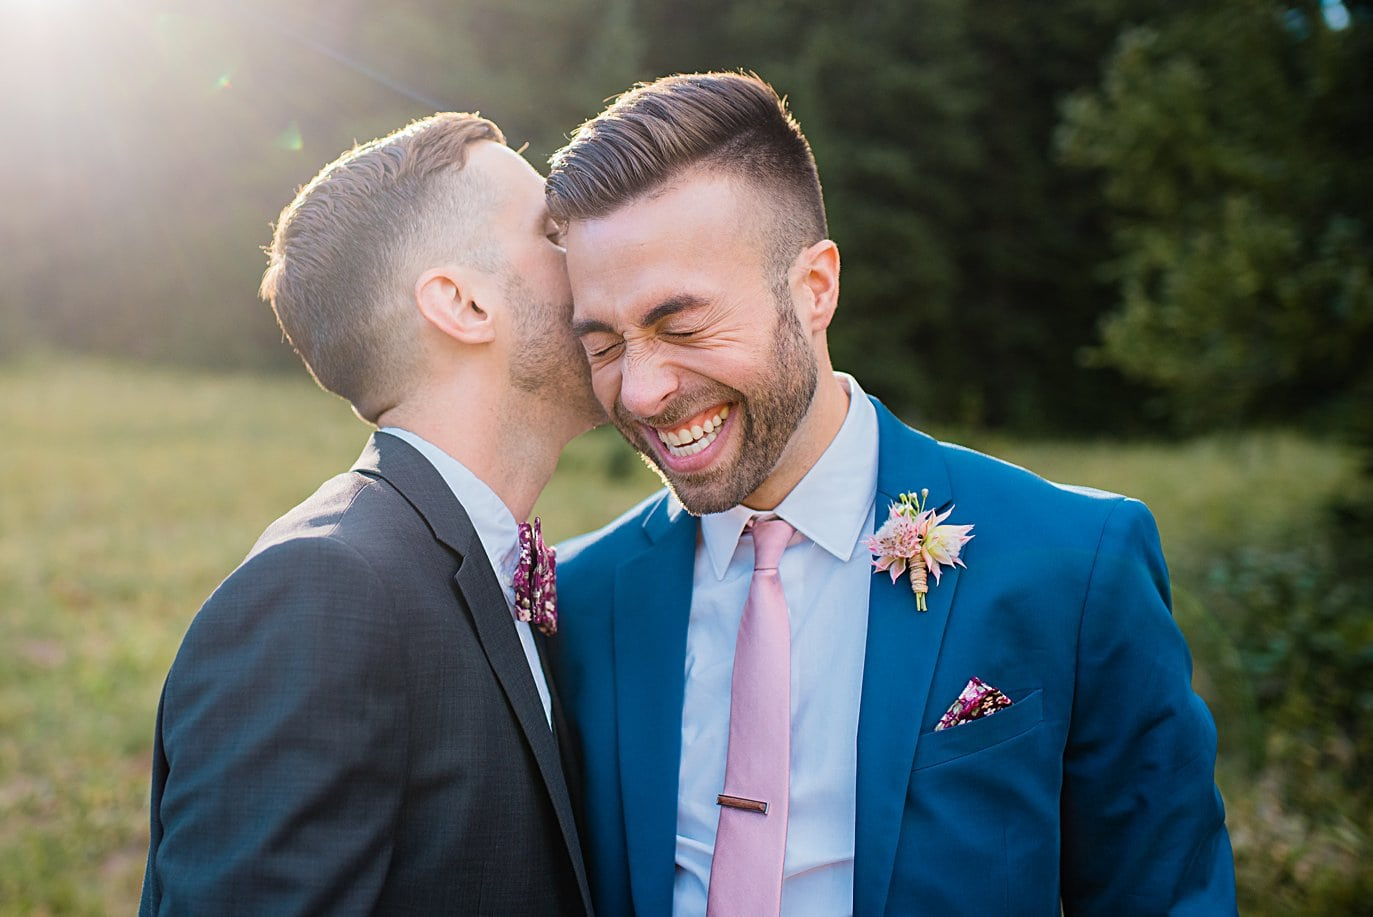 grooms laughing together at Breckenridge Elopement by Colorado gay wedding photographer Jennie Crate